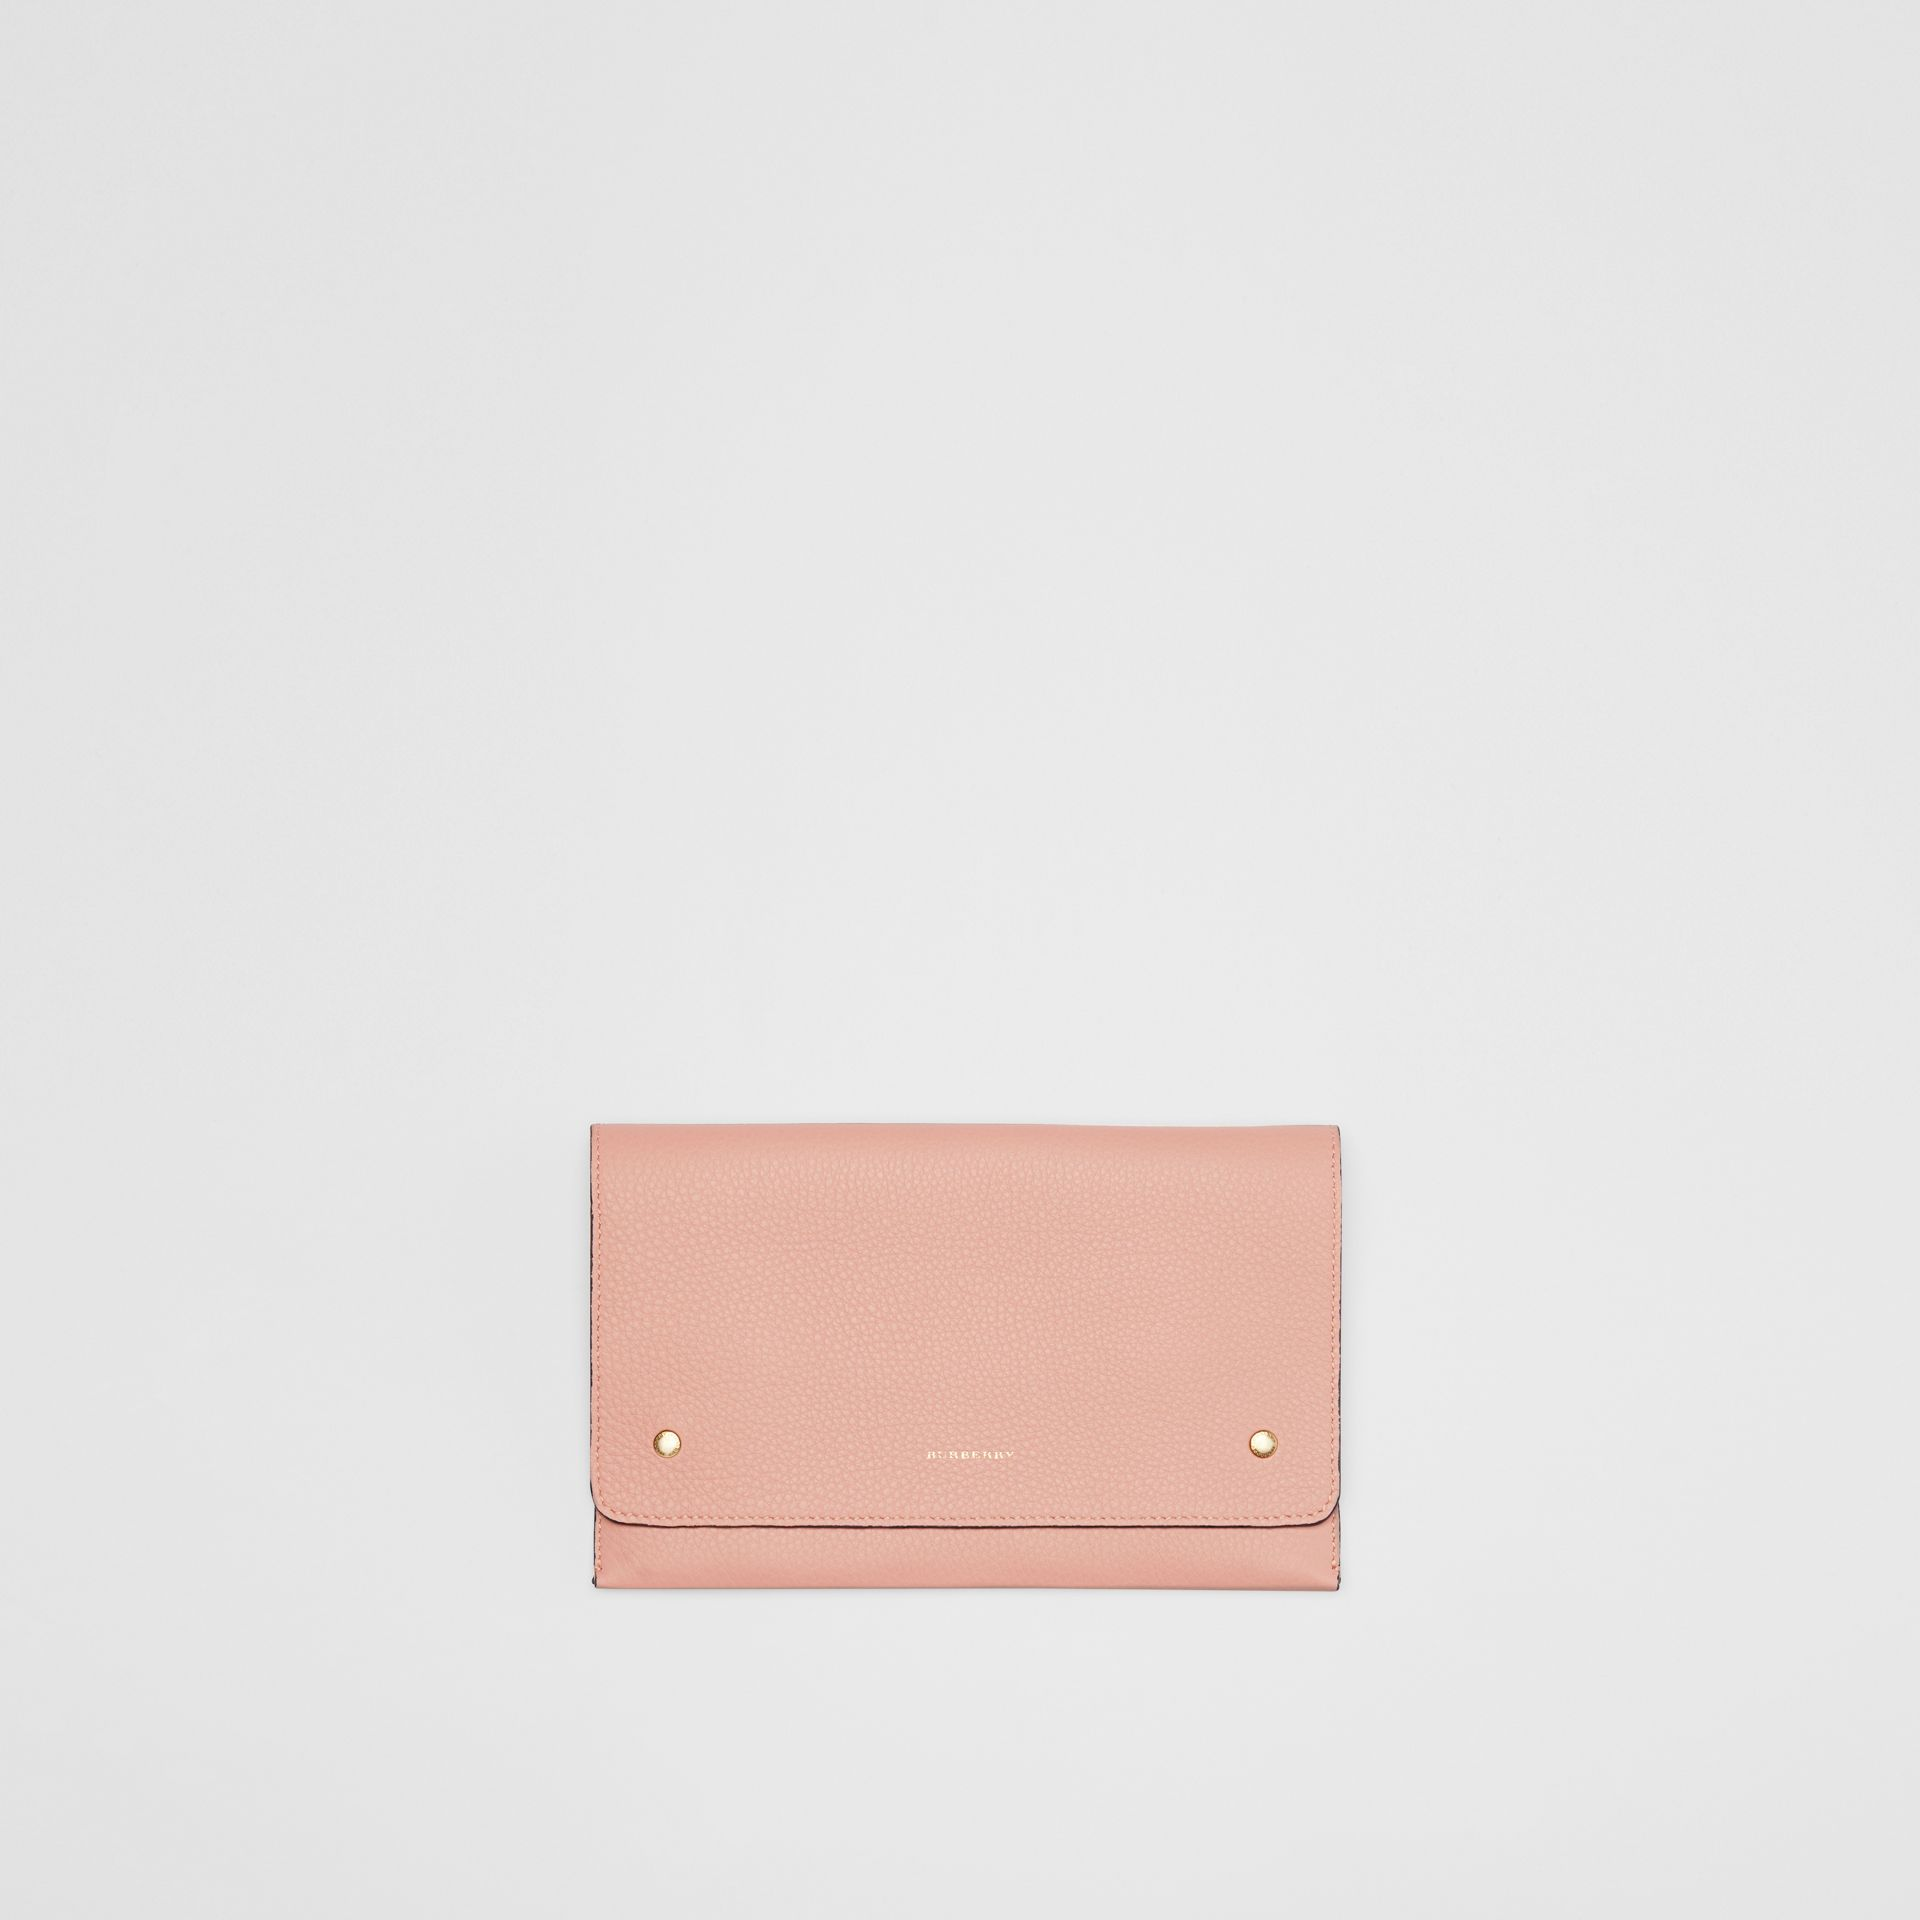 Two-tone Leather Wristlet Clutch in Ash Rose - Women | Burberry United Kingdom - gallery image 0